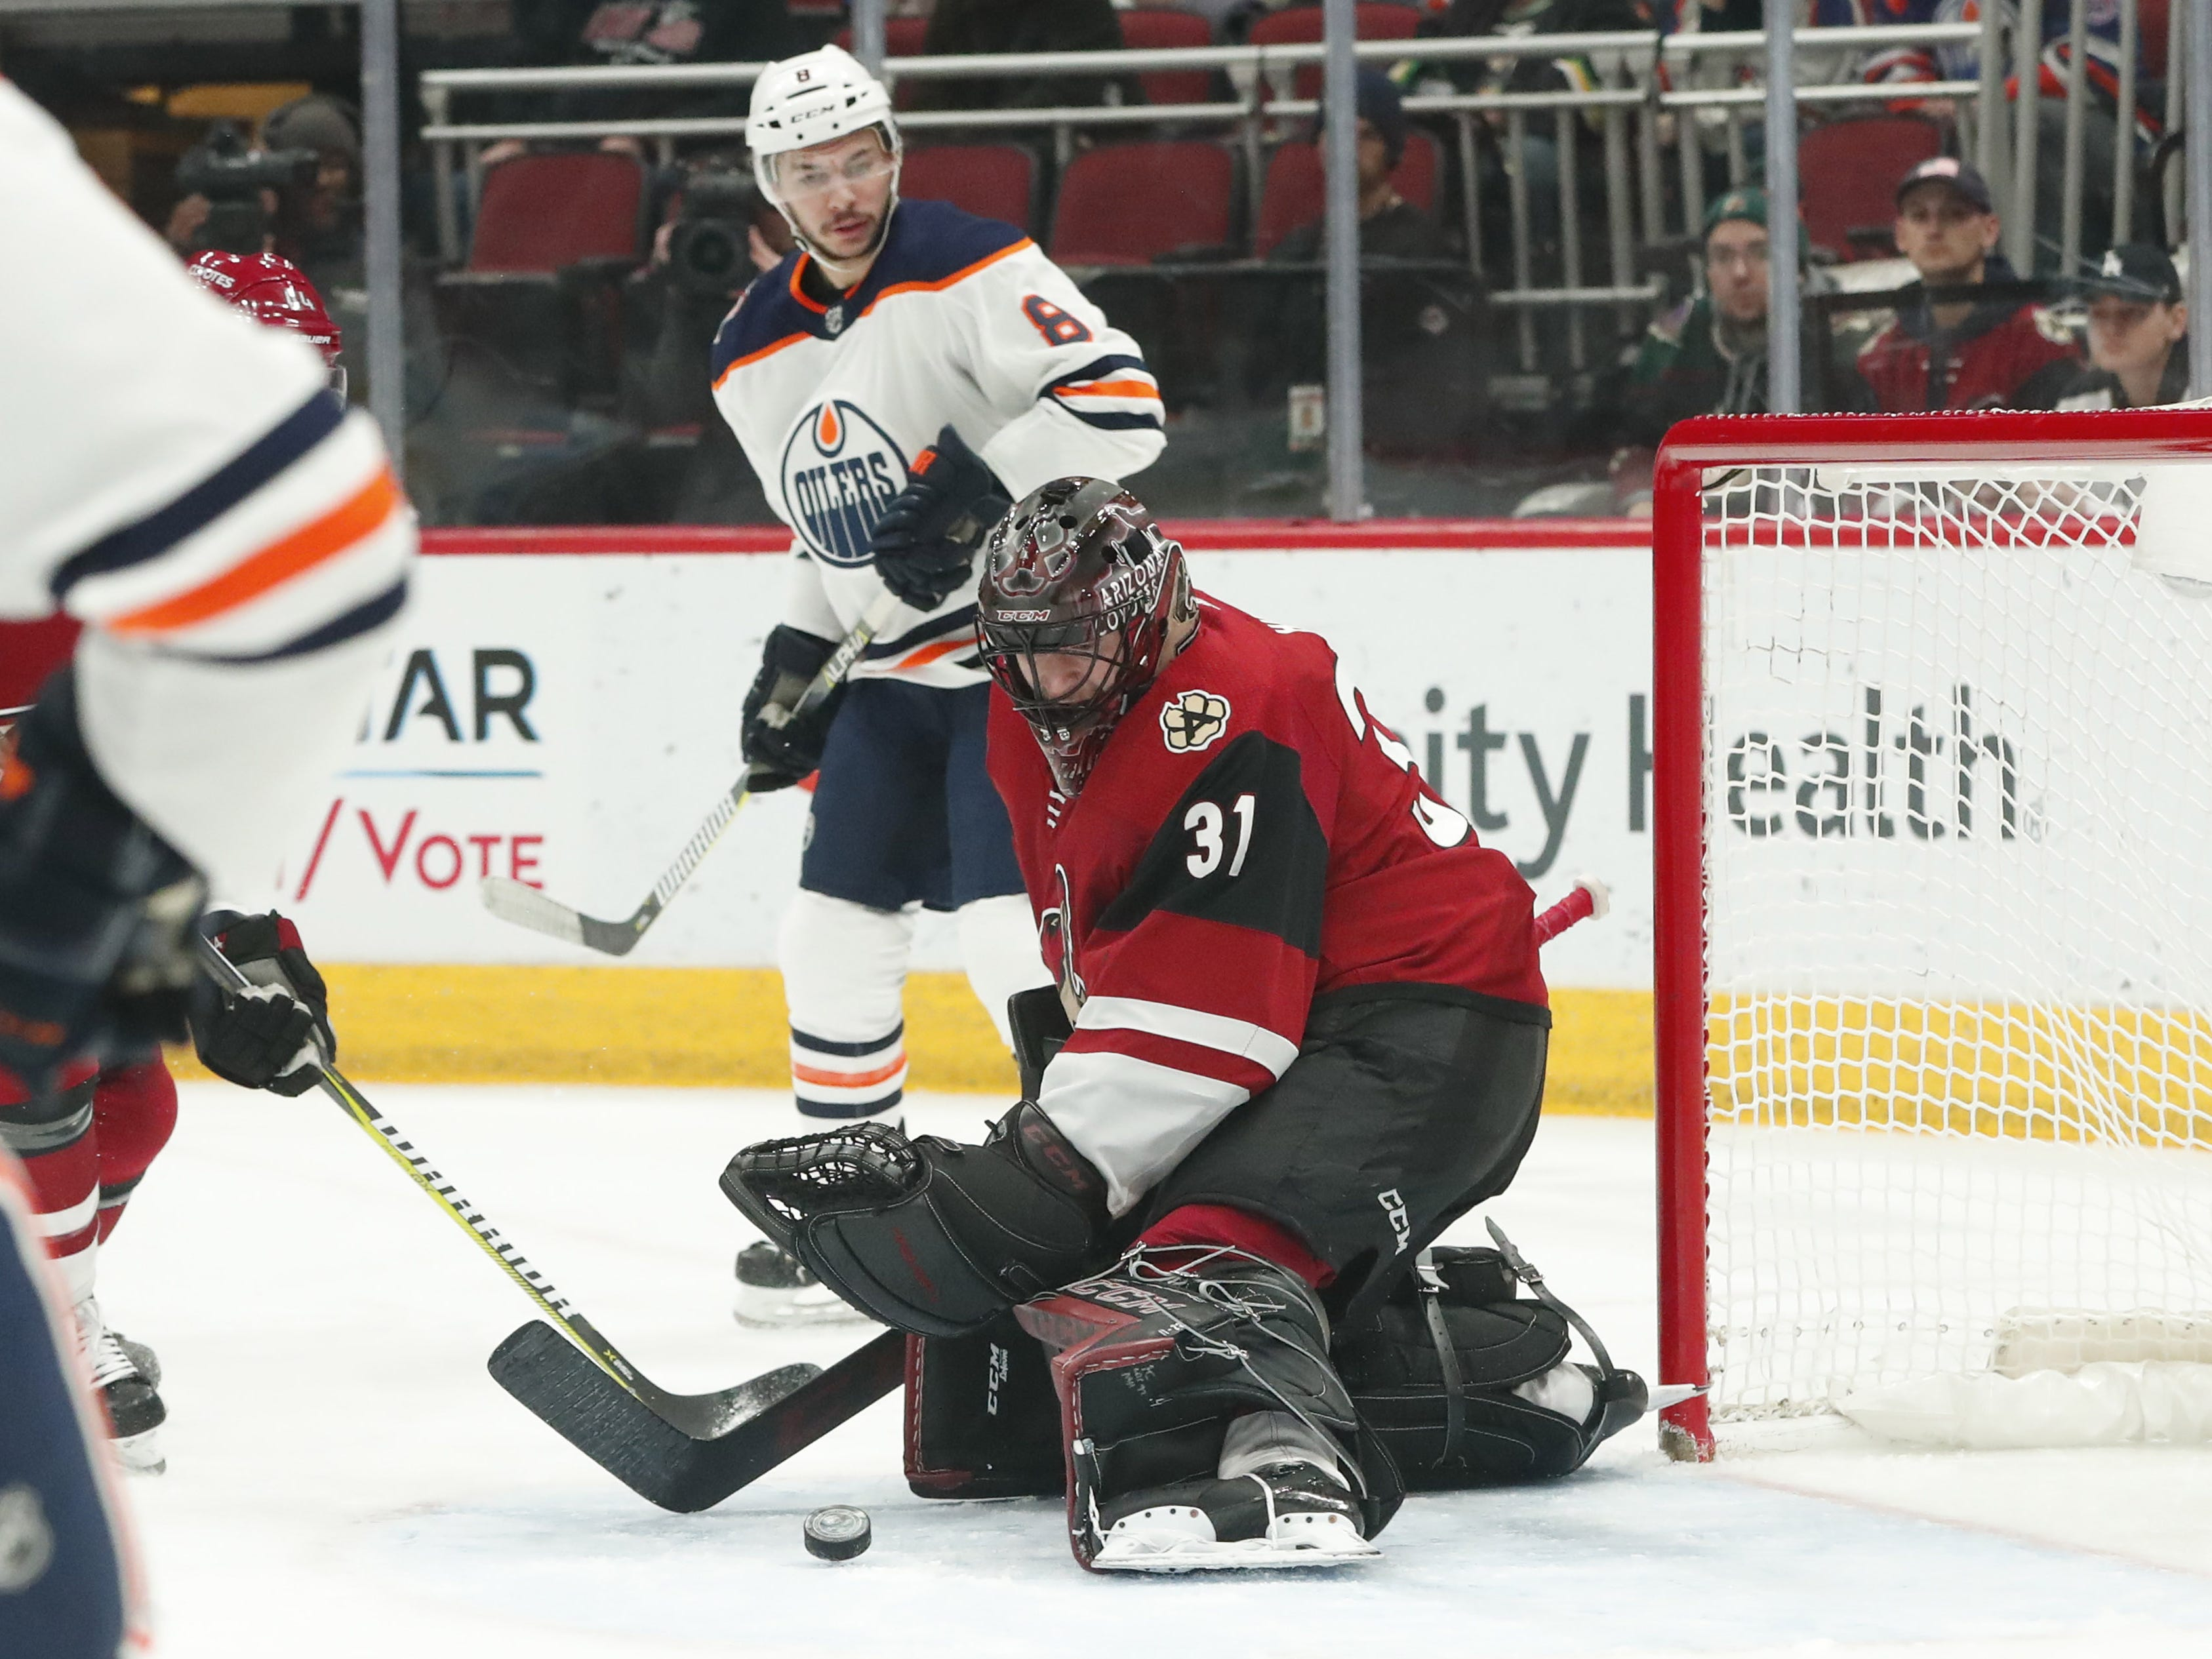 Arizona Coyotes goaltender Adin Hill (31) makes a save in front of Edmonton Oilers right wing Ty Rattie (8) during the first period in Glendale January 2, 2019.